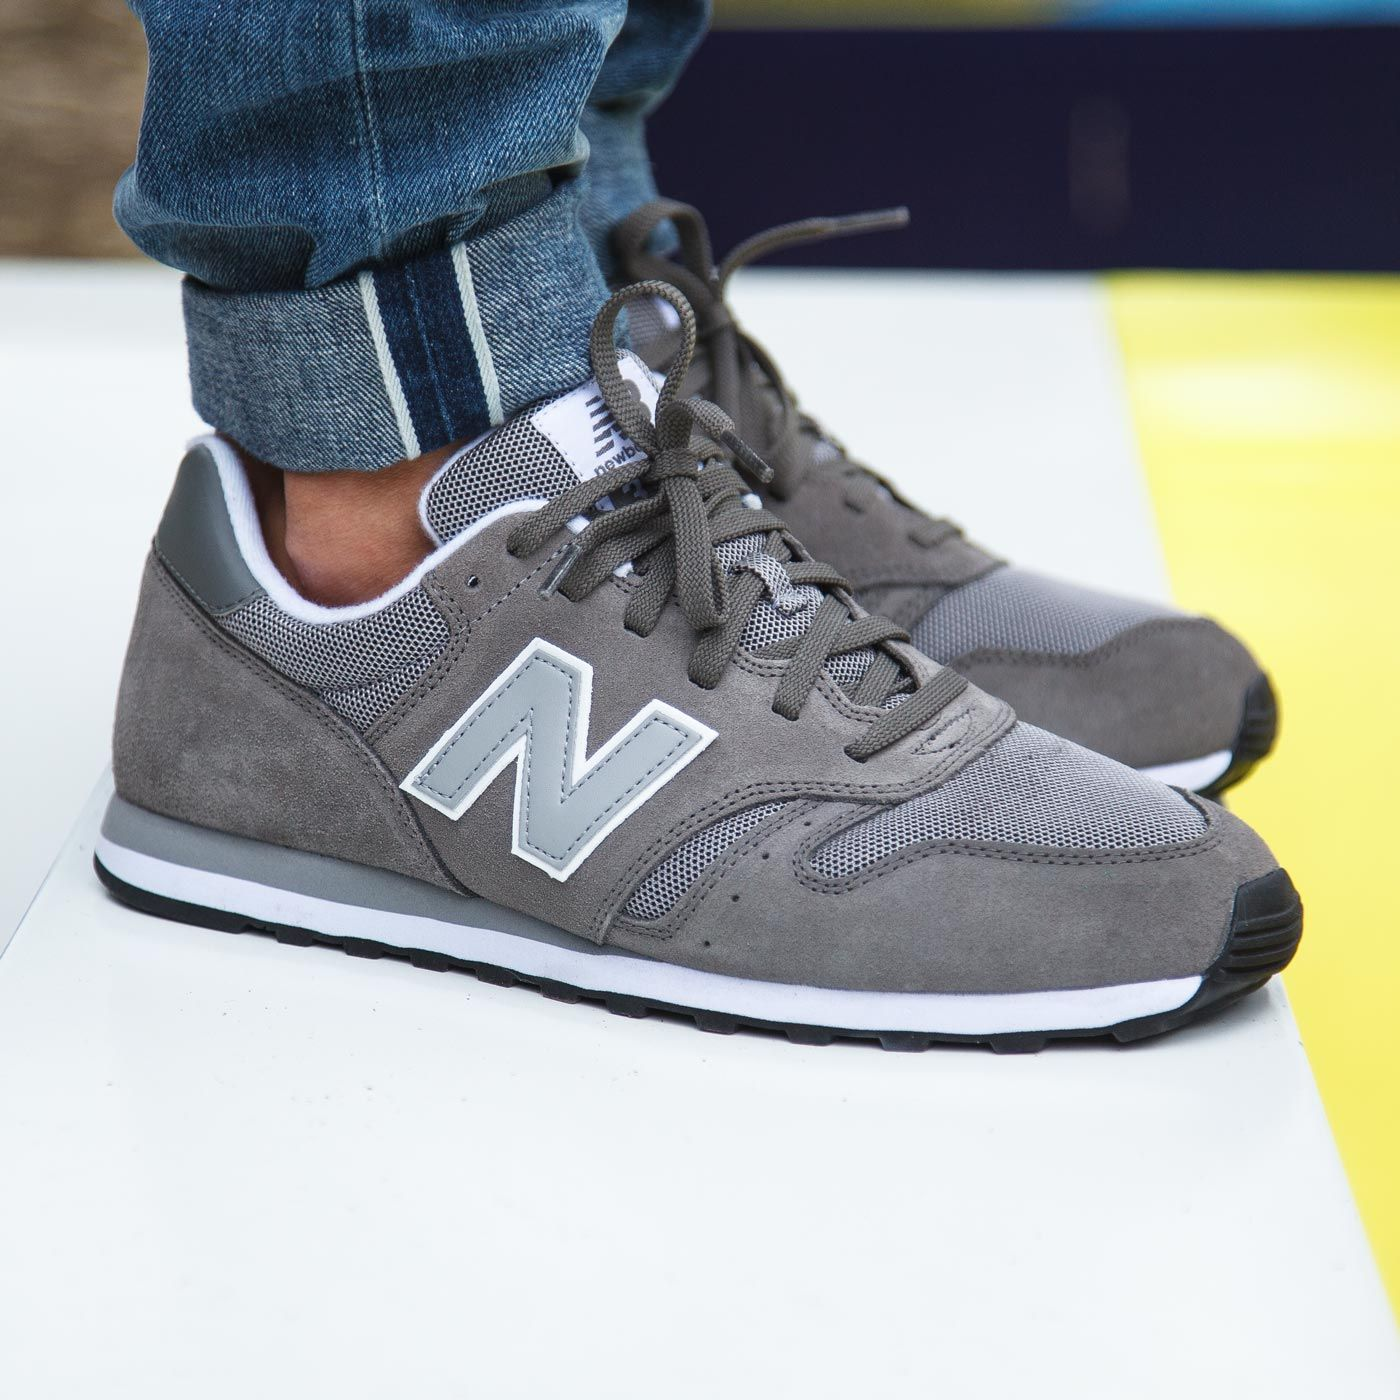 Outlet Recommend New Balance ML373MMA Mens Running Shoescheap new balance sneakerauthentic quality